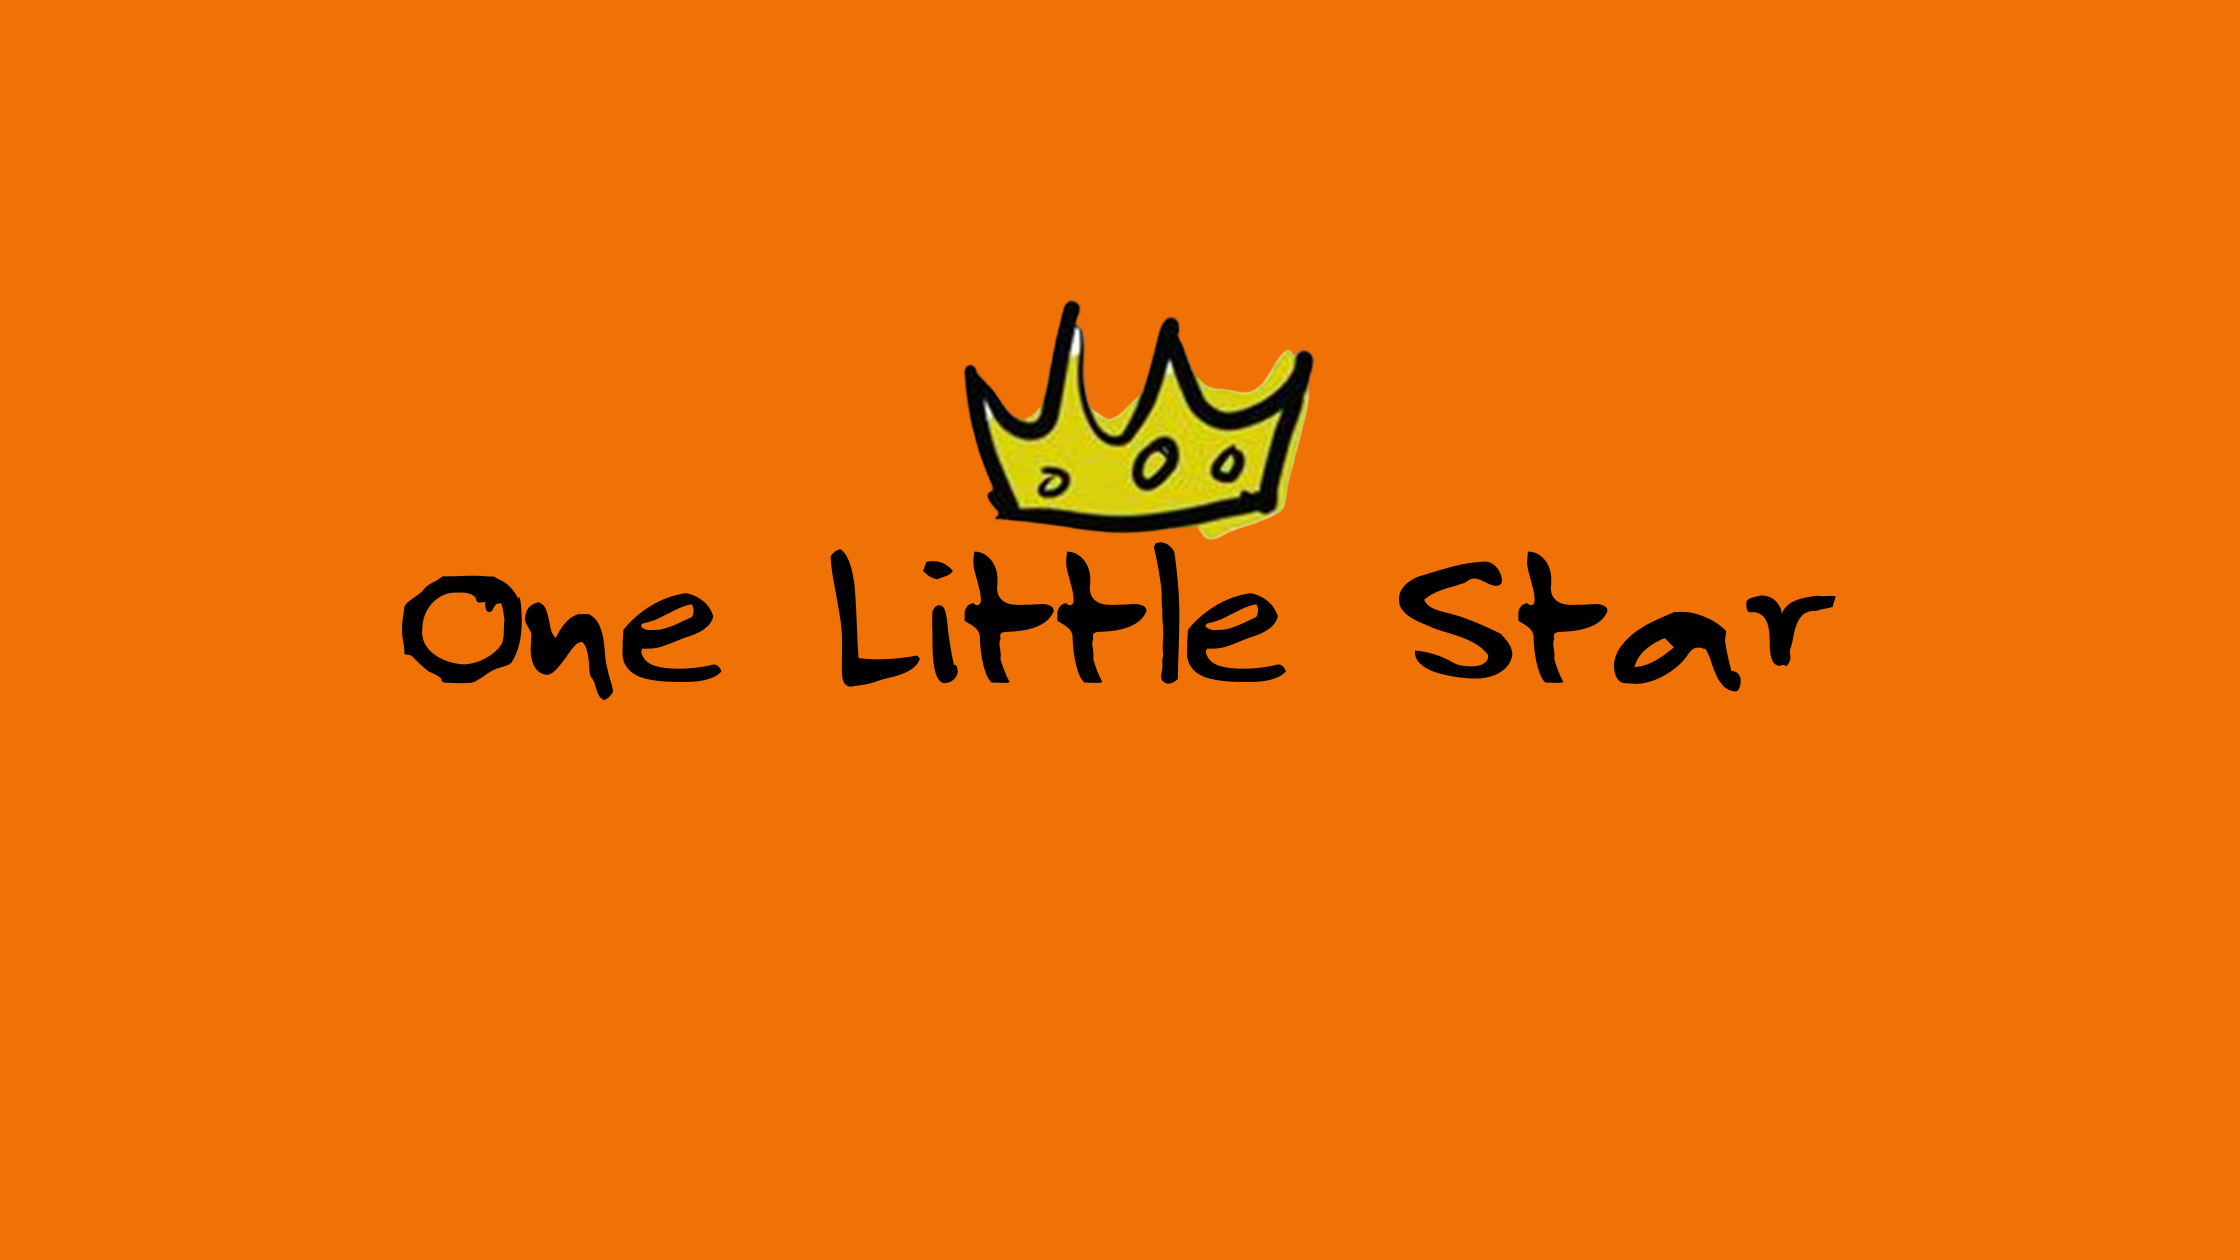 One Little Star